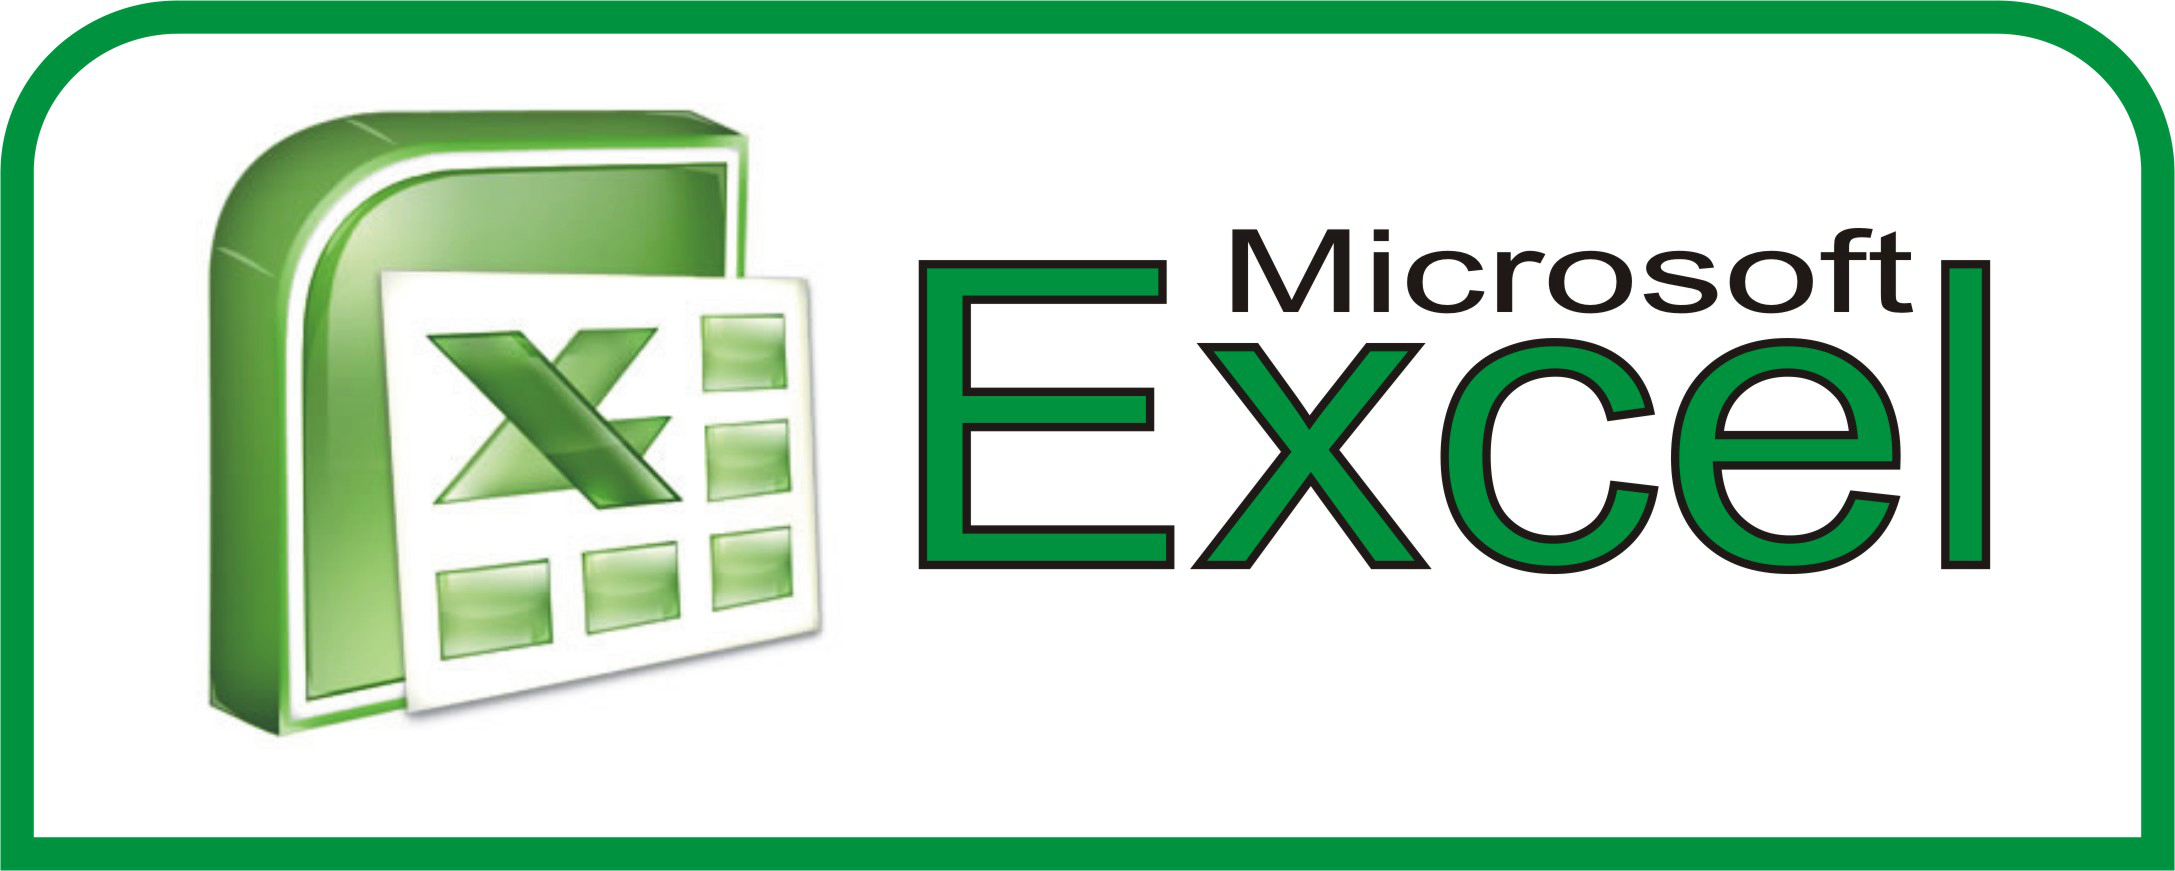 Ediblewildsus  Marvelous  Excel Shortcuts You Probably Didnt Know About  Techdissected With Lovely Excel Vba Color Besides Run Excel Macro Furthermore Excel Strings With Beautiful Excel To Outlook Also Excel Physical Therapy Palmer In Addition Add Page Numbers In Excel And String Concatenation In Excel As Well As Excel Lock A Cell Additionally Excel Exercise From Techdissectedcom With Ediblewildsus  Lovely  Excel Shortcuts You Probably Didnt Know About  Techdissected With Beautiful Excel Vba Color Besides Run Excel Macro Furthermore Excel Strings And Marvelous Excel To Outlook Also Excel Physical Therapy Palmer In Addition Add Page Numbers In Excel From Techdissectedcom